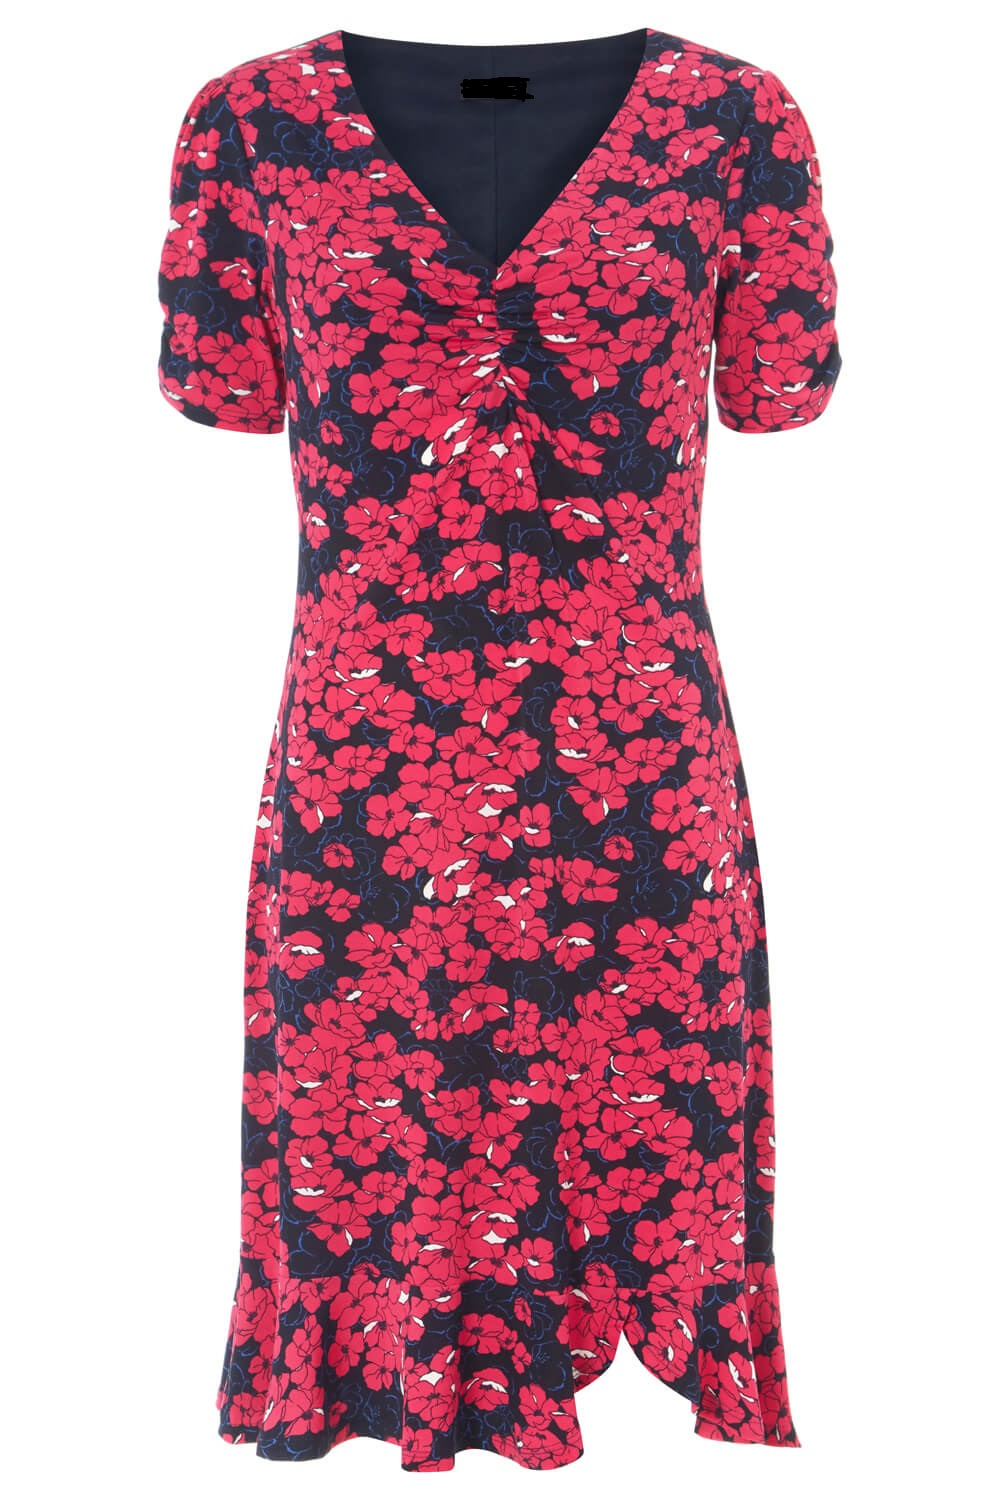 Anastasia - Frill Hem Tea Dress in Fuchsia Floral Print